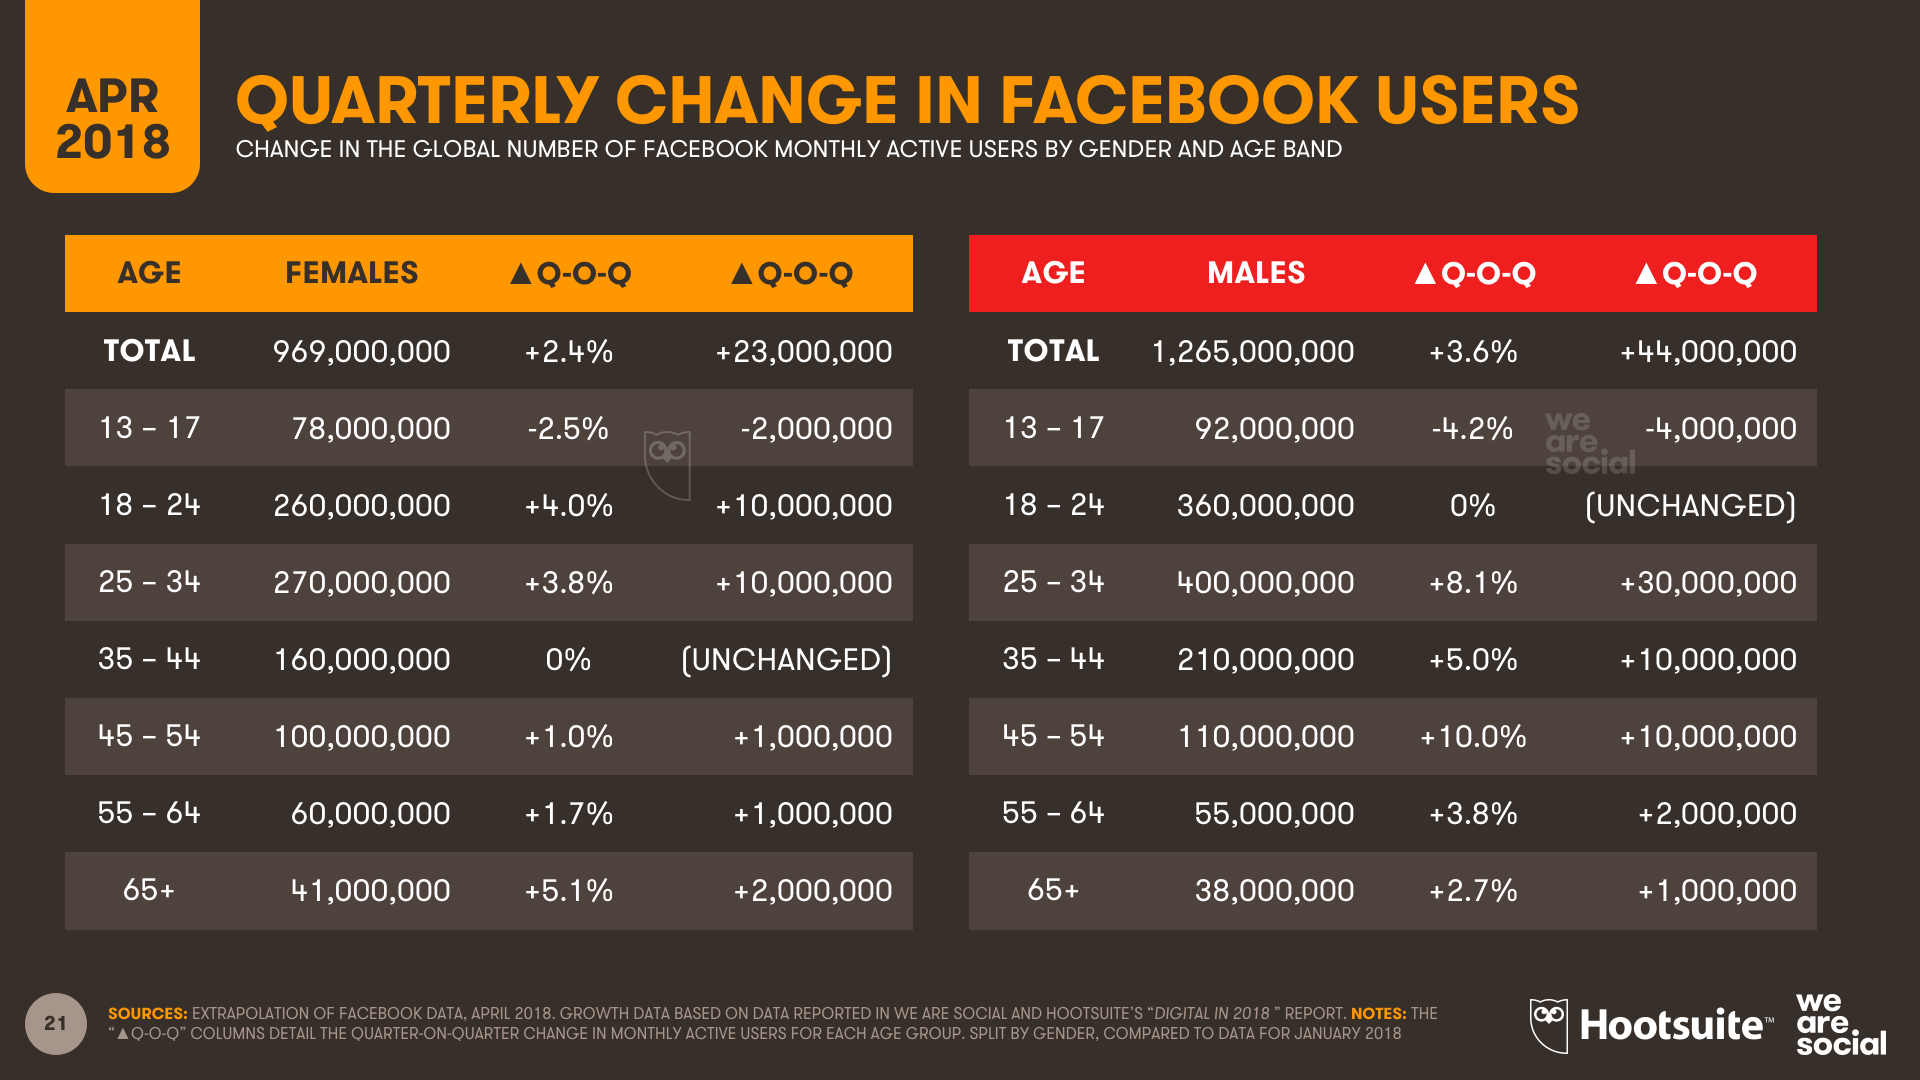 Facebook Quarterly User Change by Age - Q1 2018